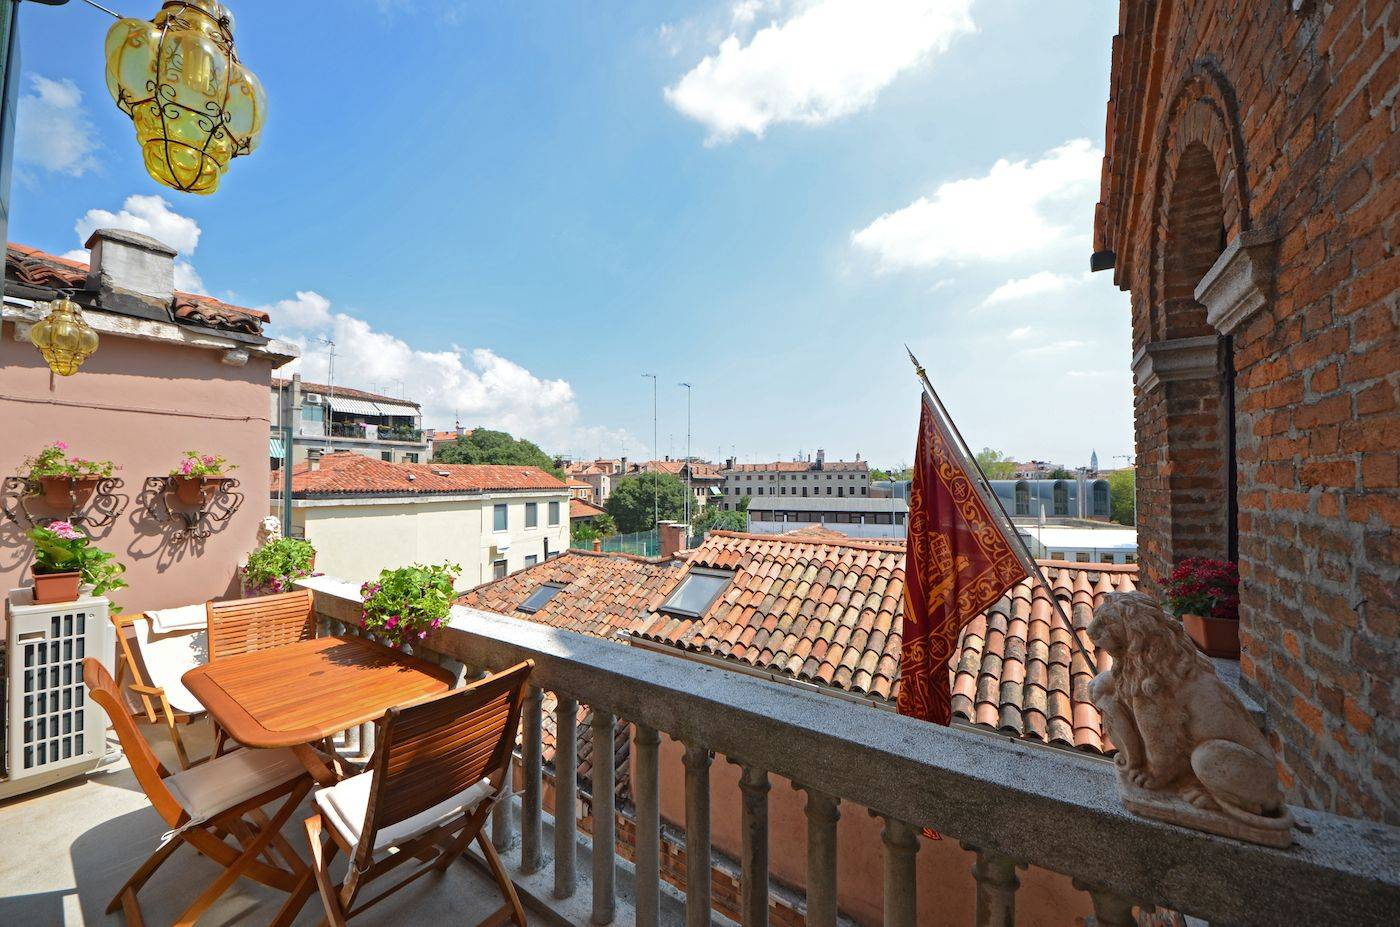 the Hemingway apartment has a sunny terrace with open view on the rooftops